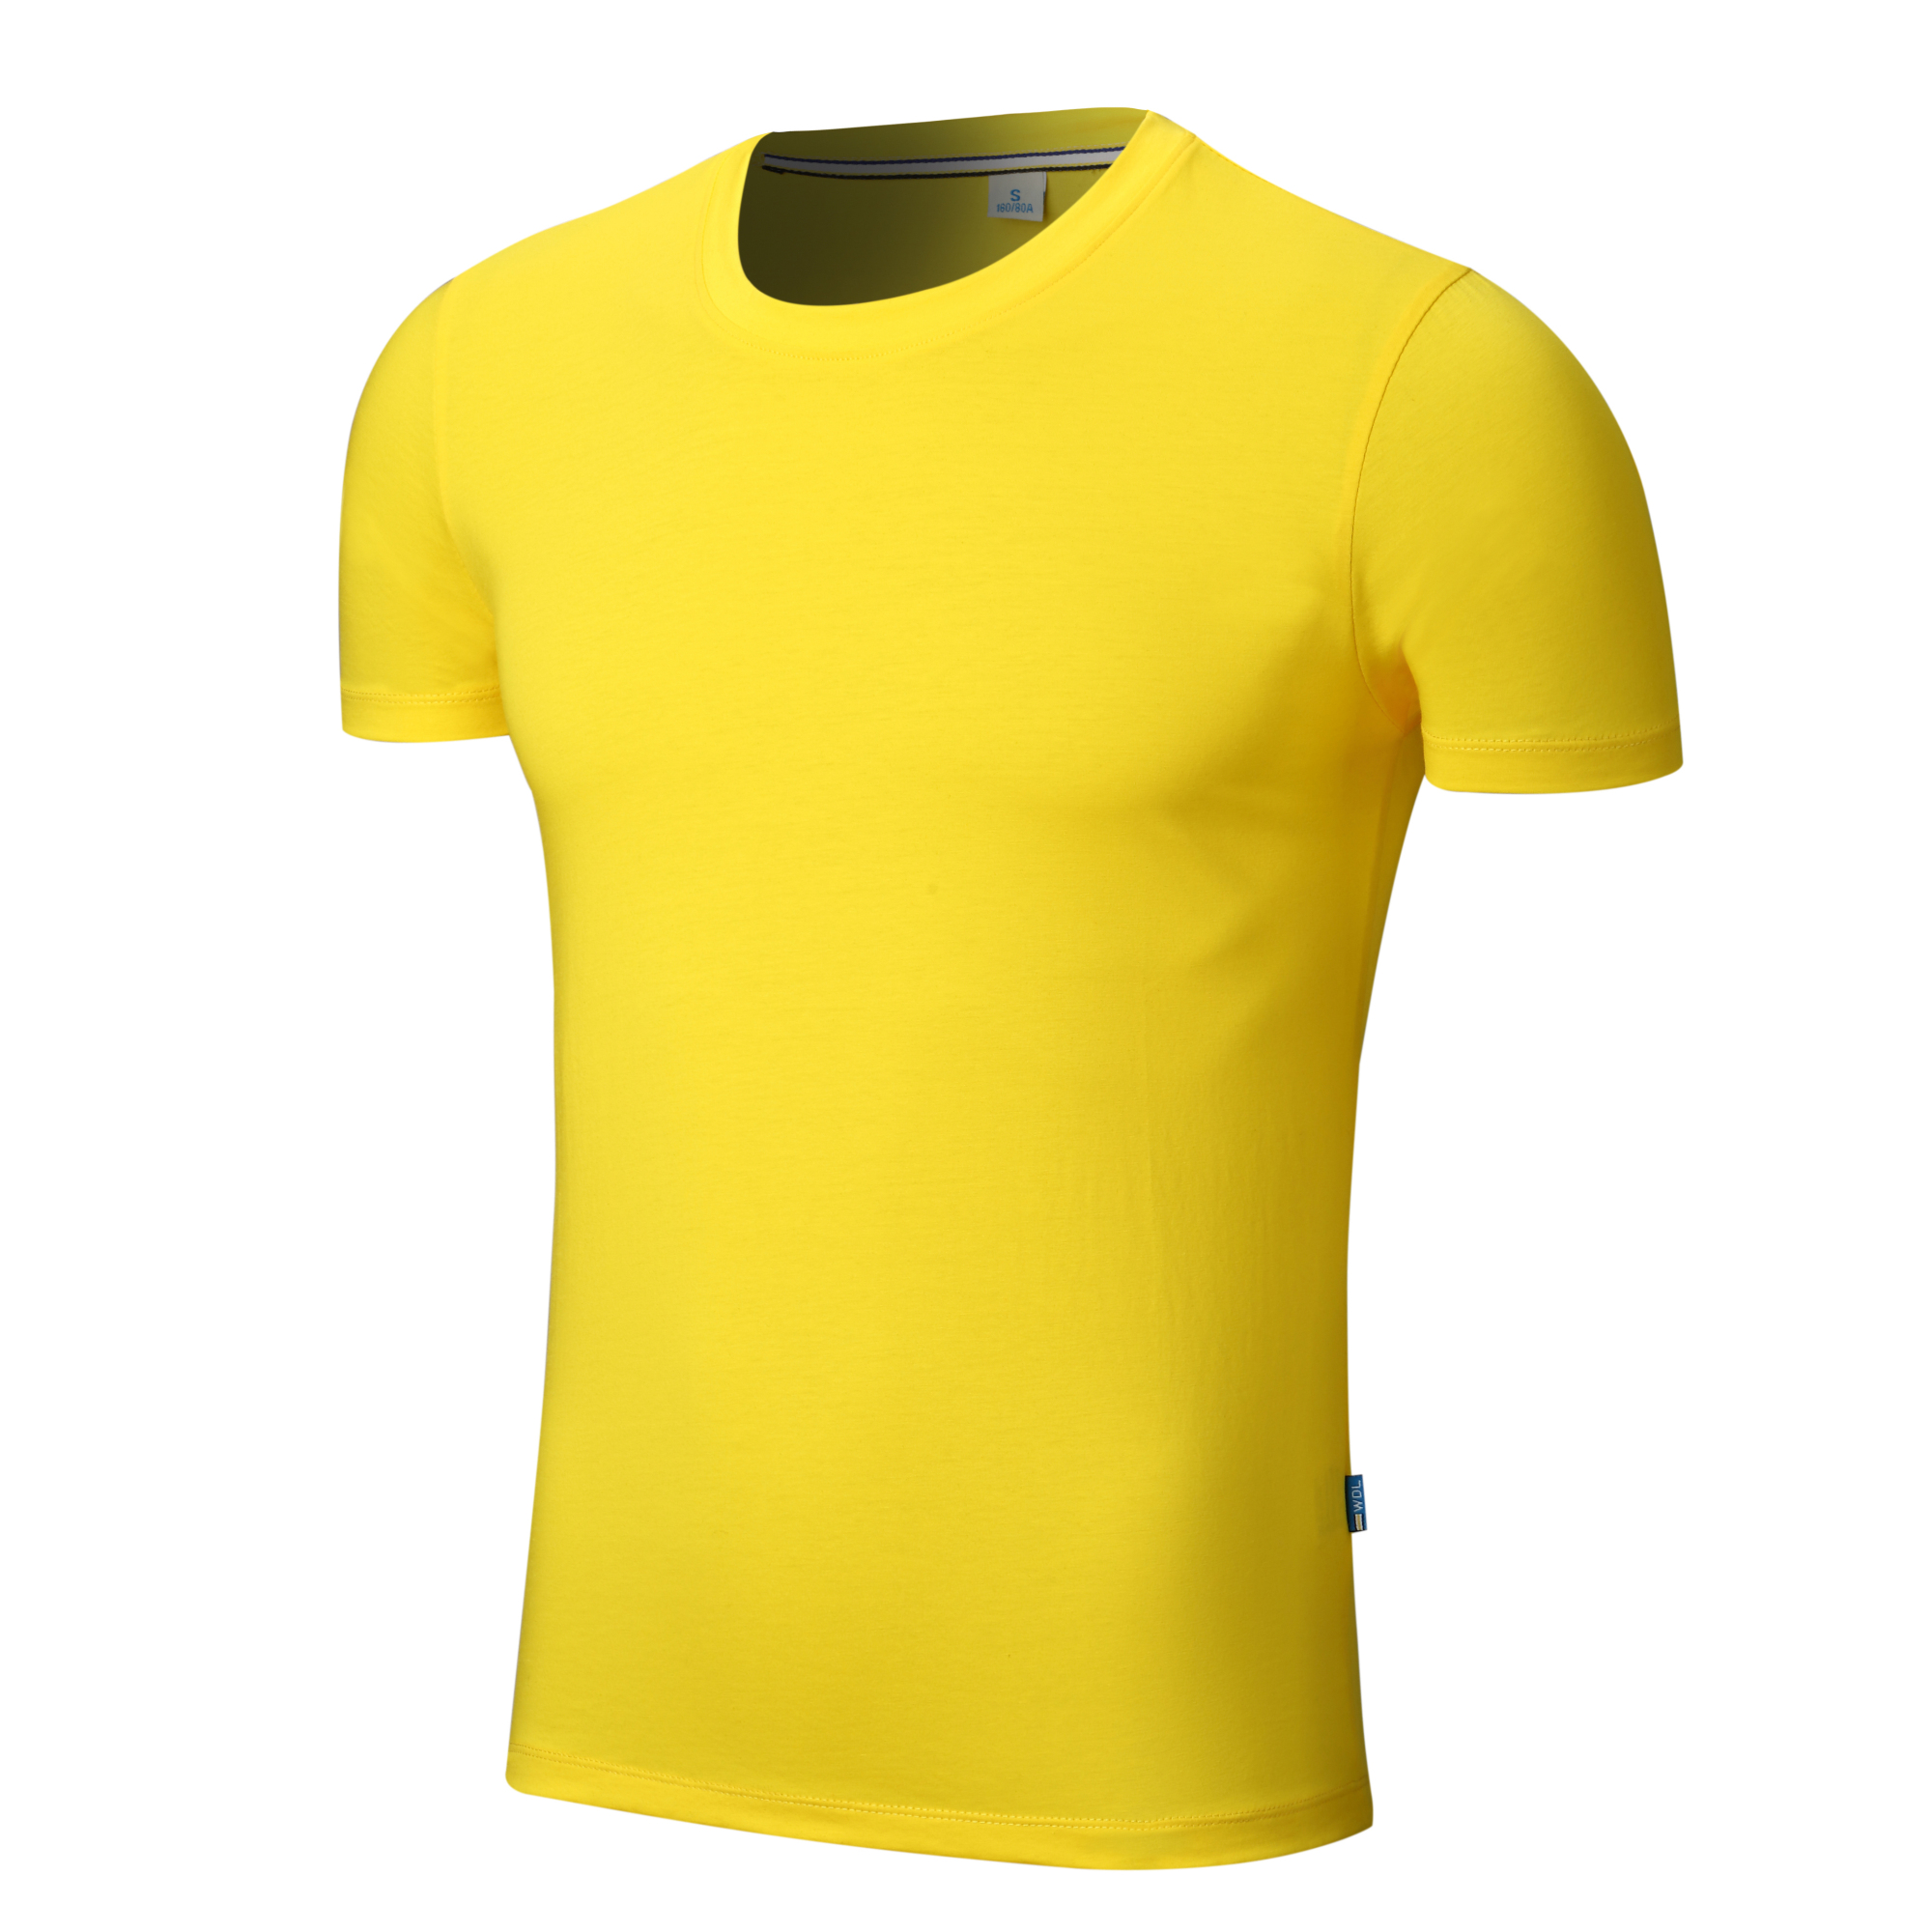 Oem Custom T Shirt Printing Hot Sale Cheap Tshirts With Your Own